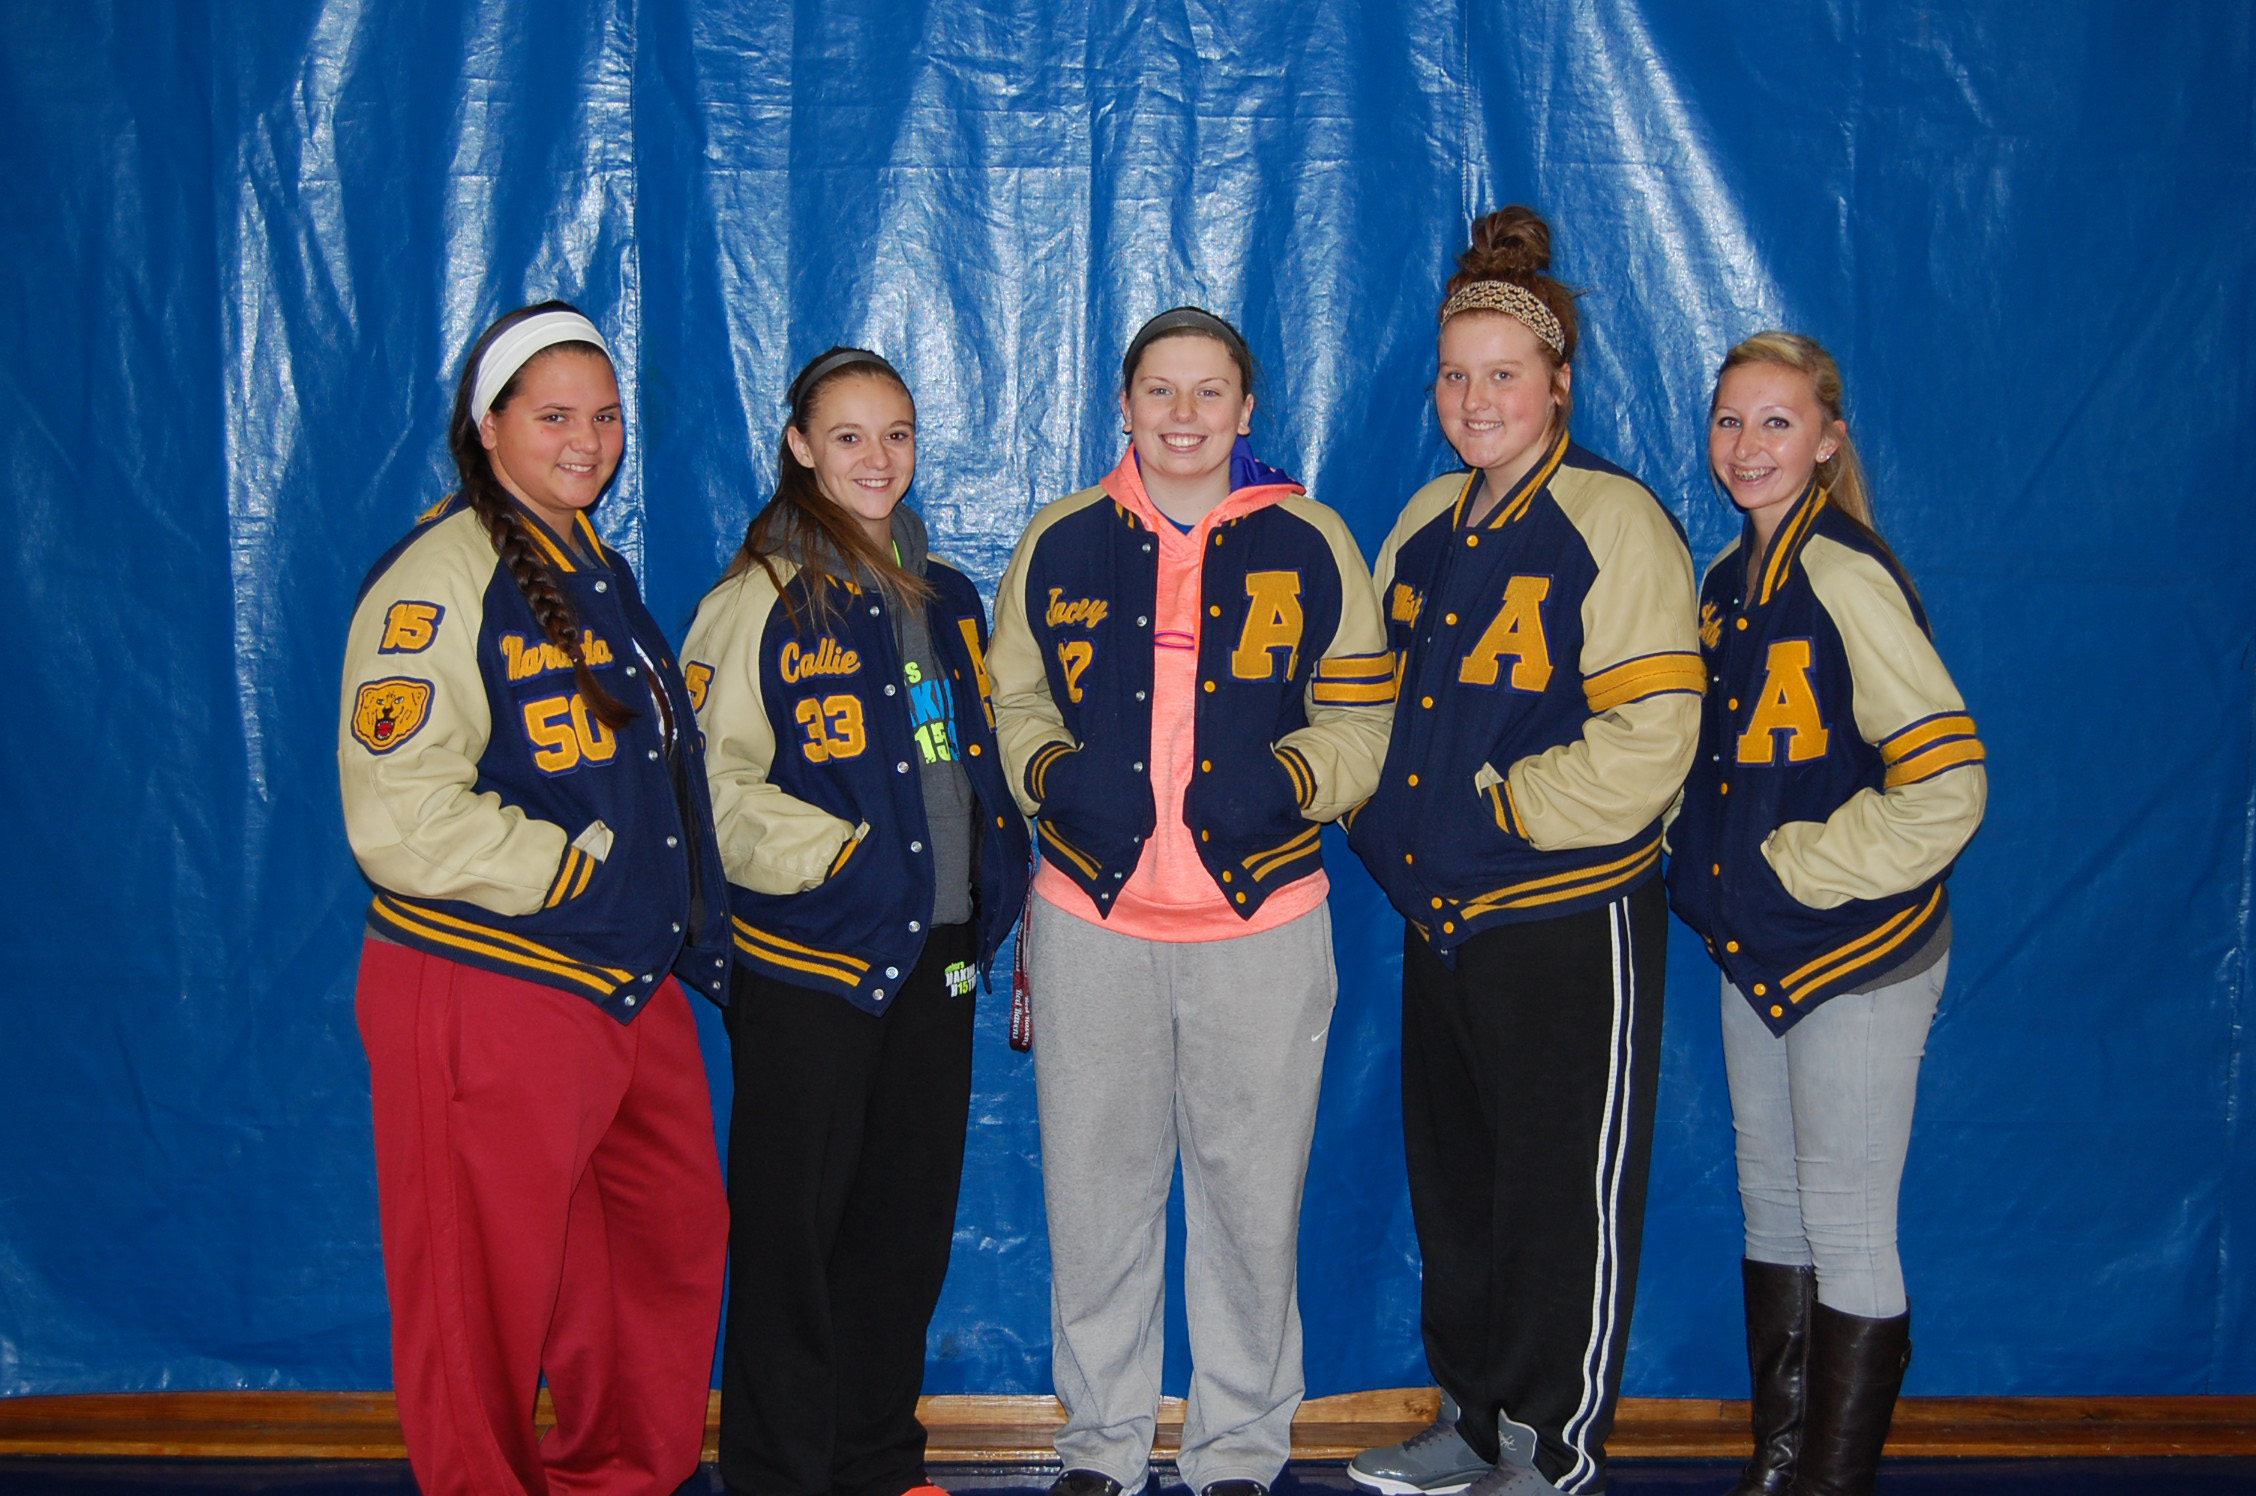 These Ava High School girls received all-SCA honors at the close of the 2014 season. They are, from left: Maranda Yost, 1st team; Callie Eubanks, honorable mention; Jayce Swofford, 1st team; Misty Regennitter, 1st team; and Lakota Blakey, 2nd team.